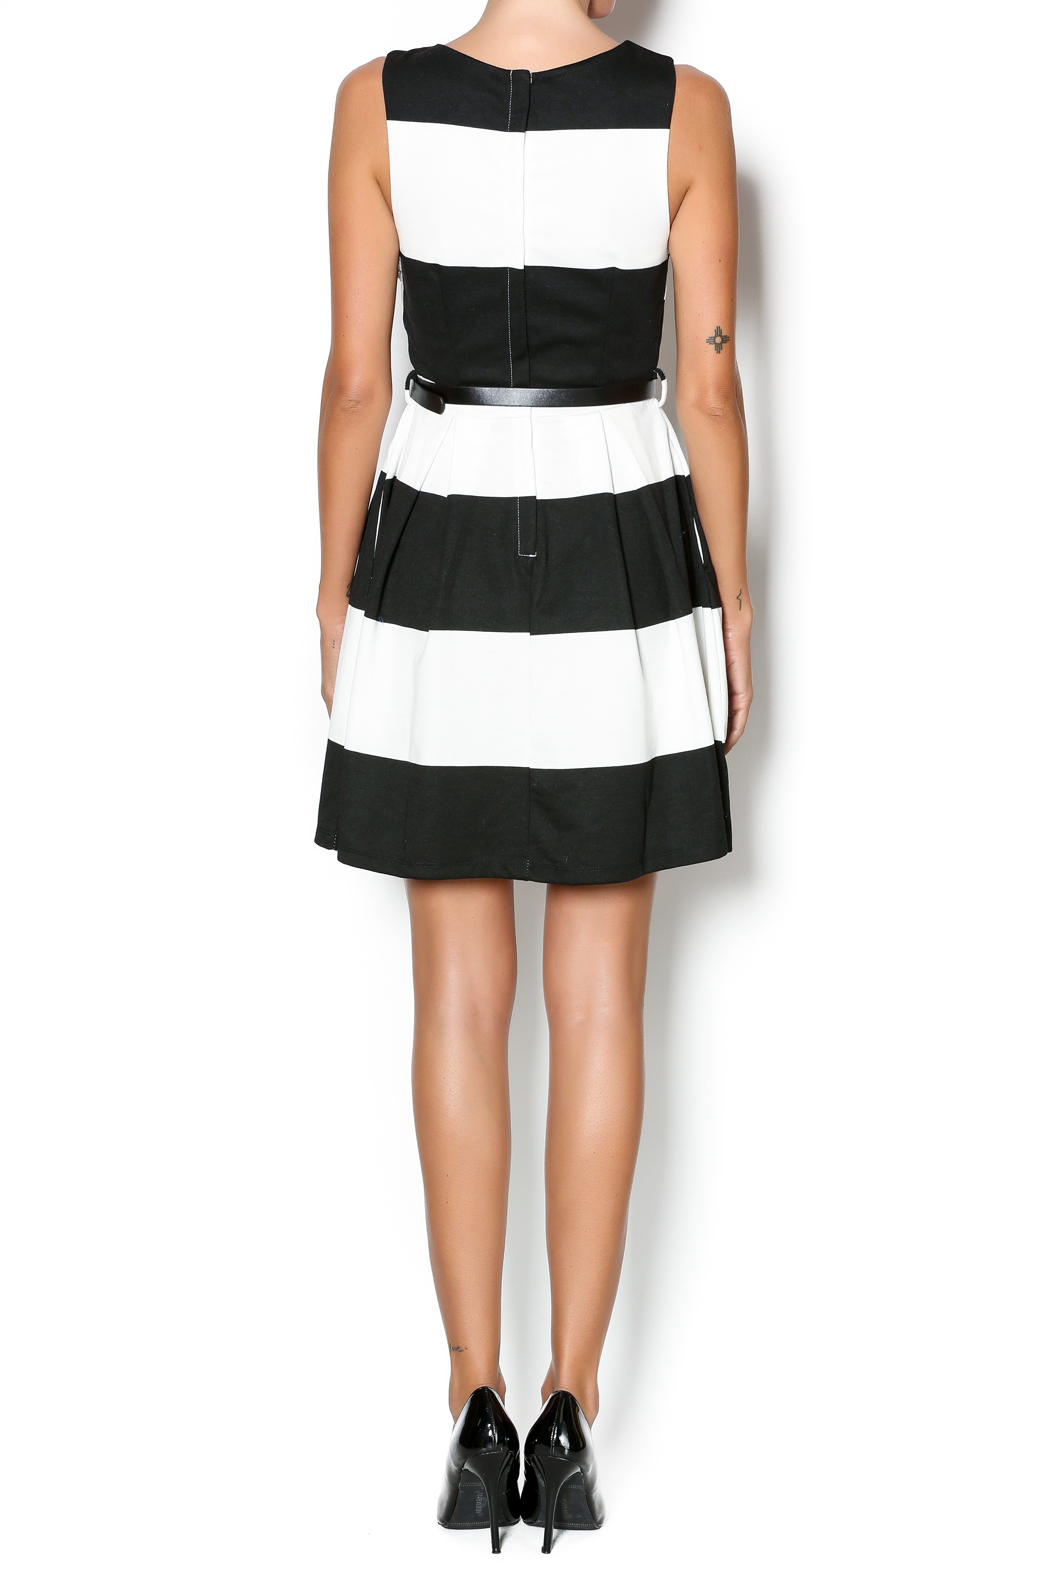 Double Zero Fit And Flare Dress - Side Cropped Image